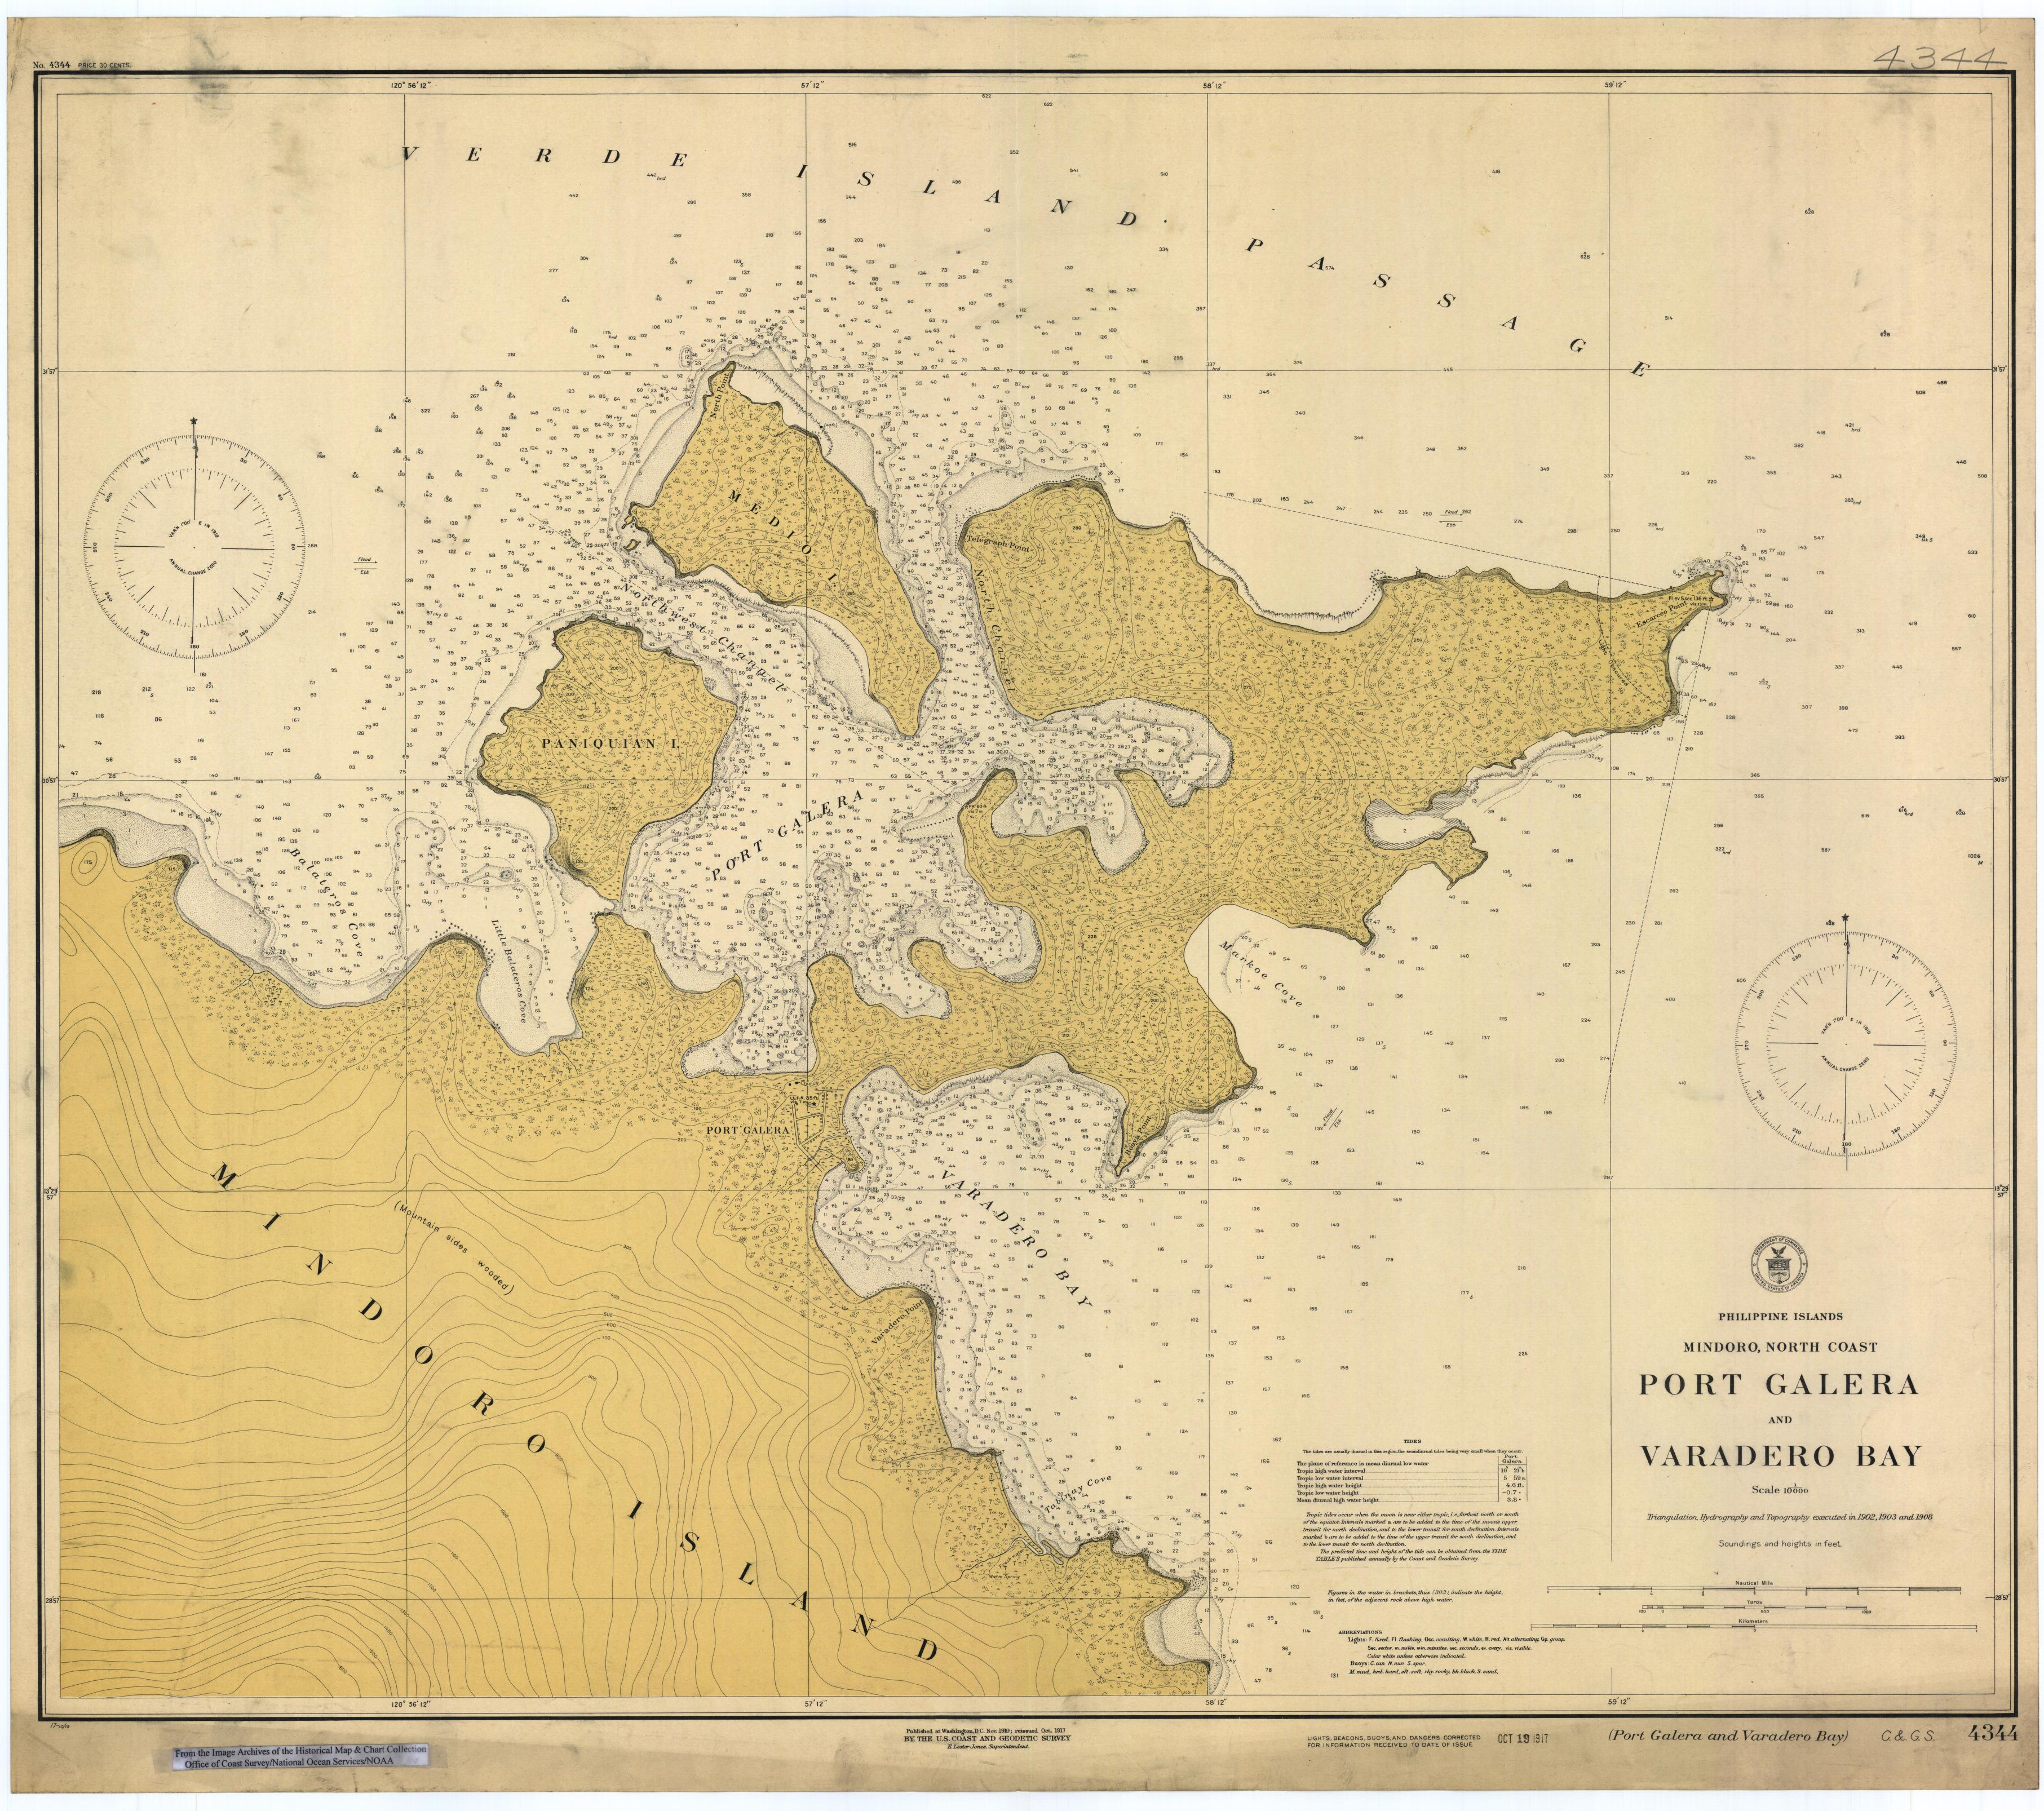 Old Nautical ChartOld Nautical Chart